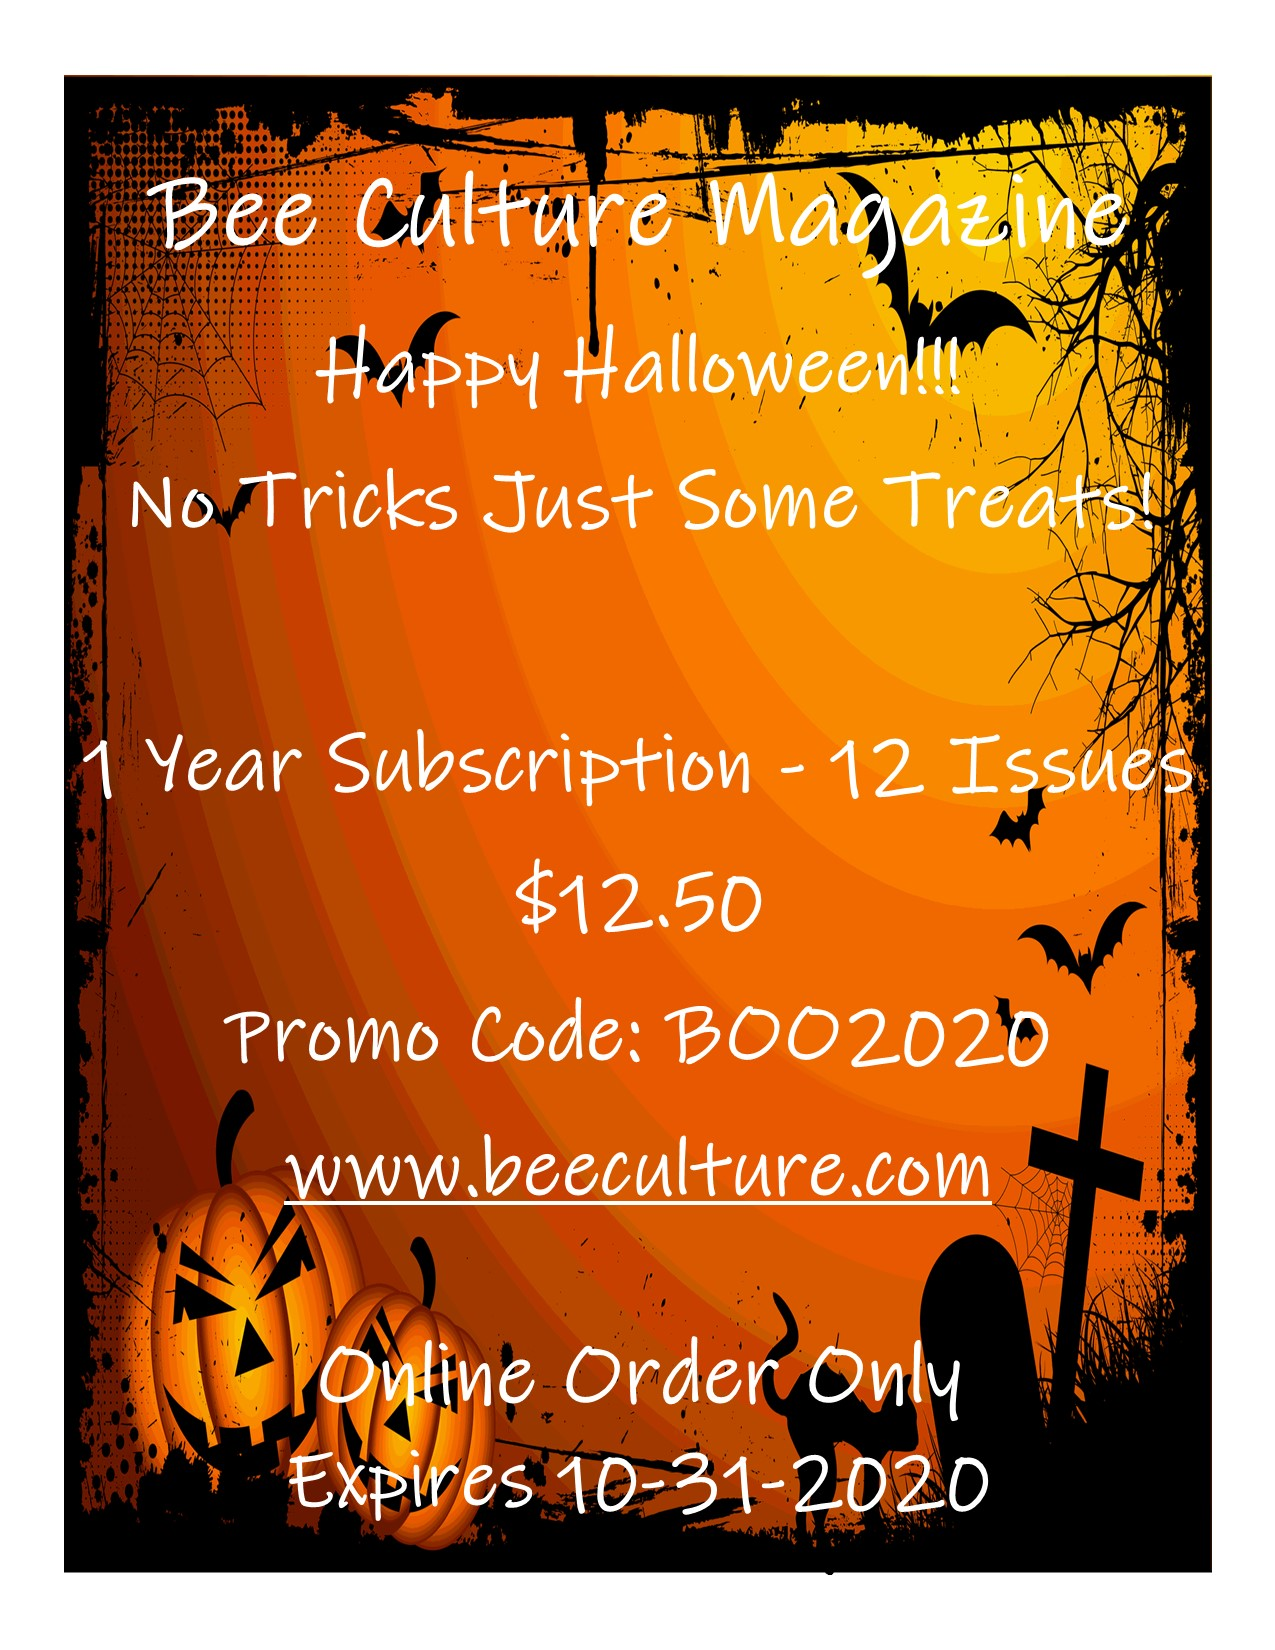 CATCH THE BUZZ – Happy Halloween!!!